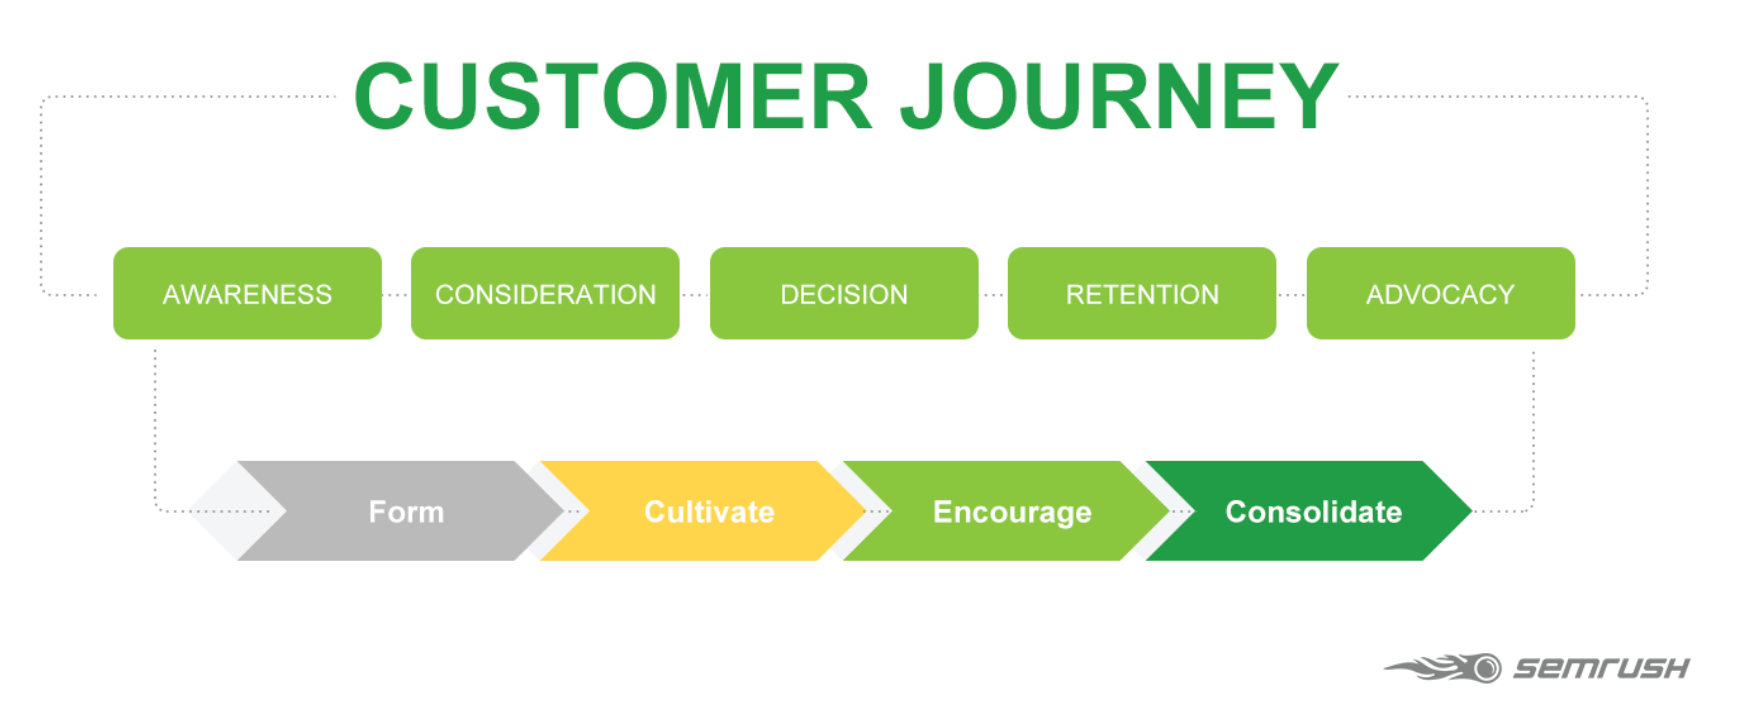 Customer Journey and Content Marketing